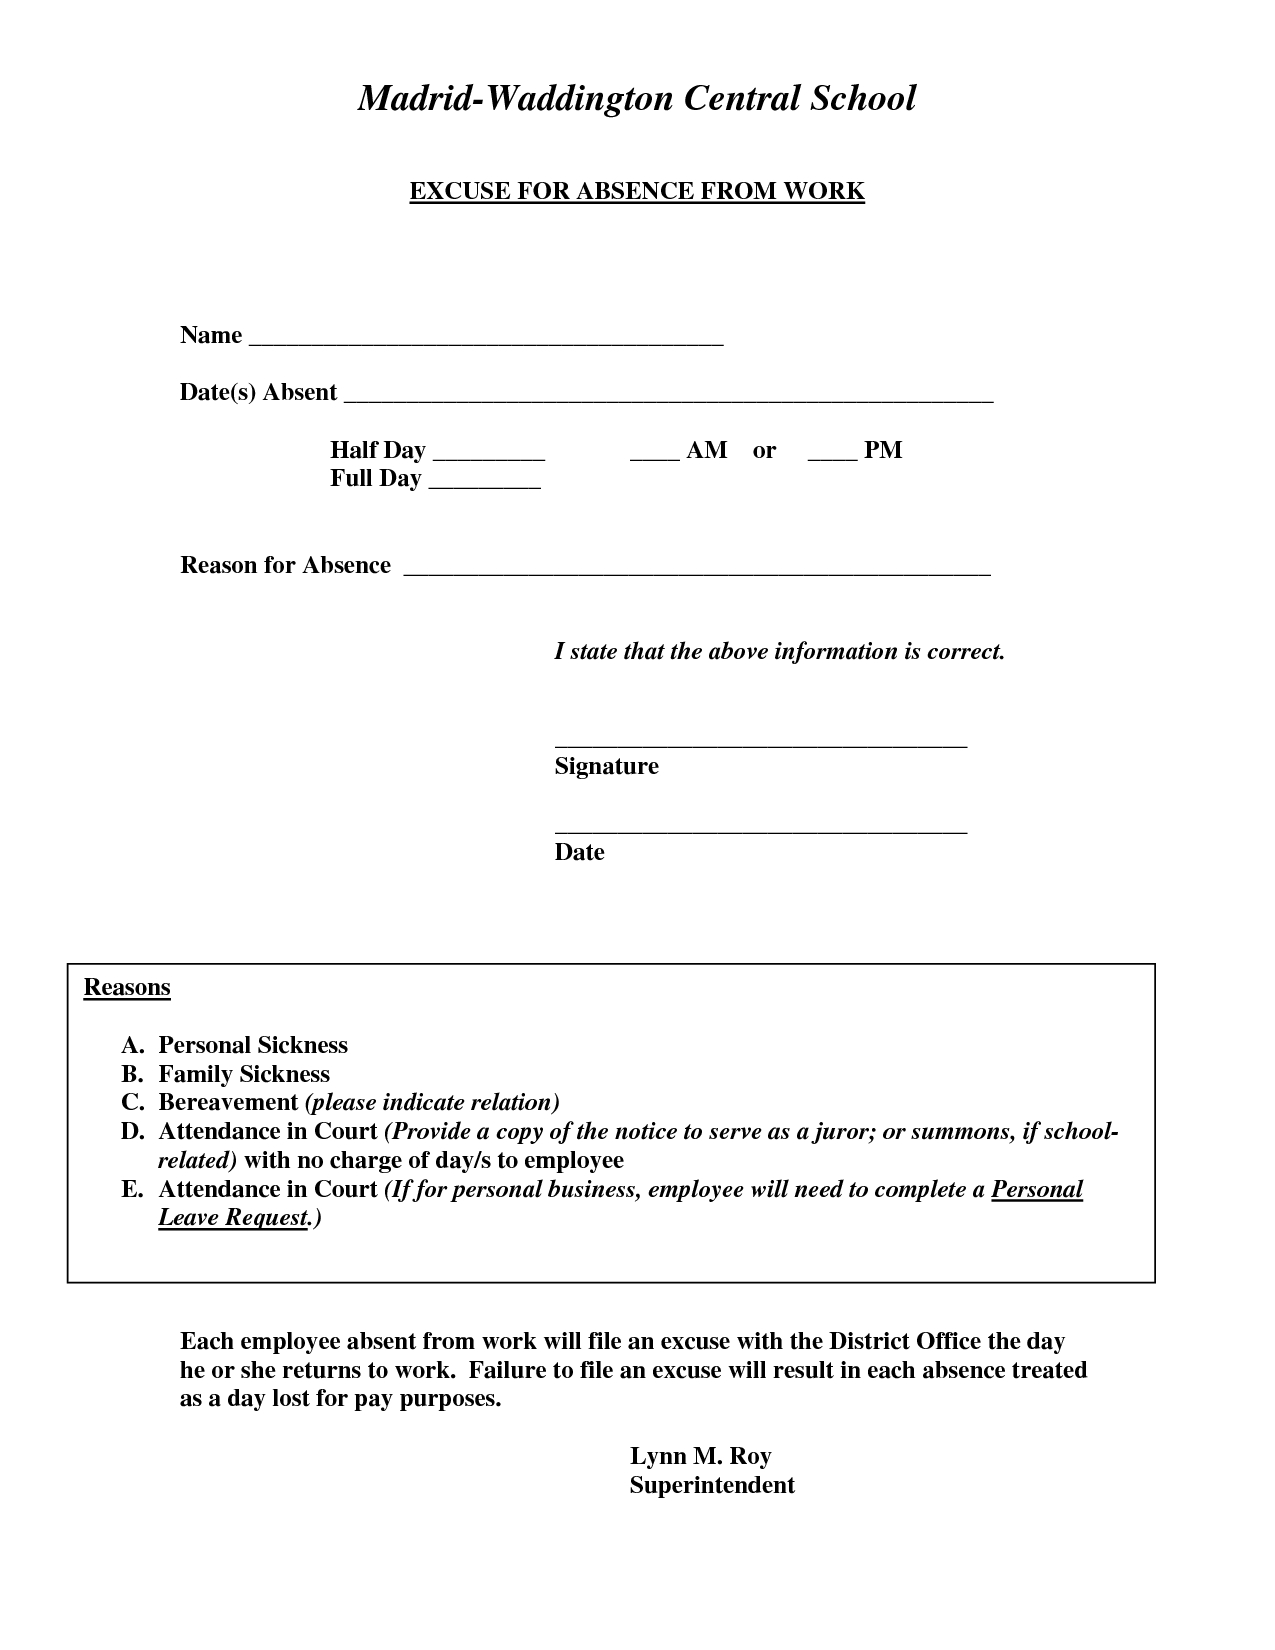 Doctors Excuse For Work Template | Excuse For Absence From Work - Free Printable Doctors Note